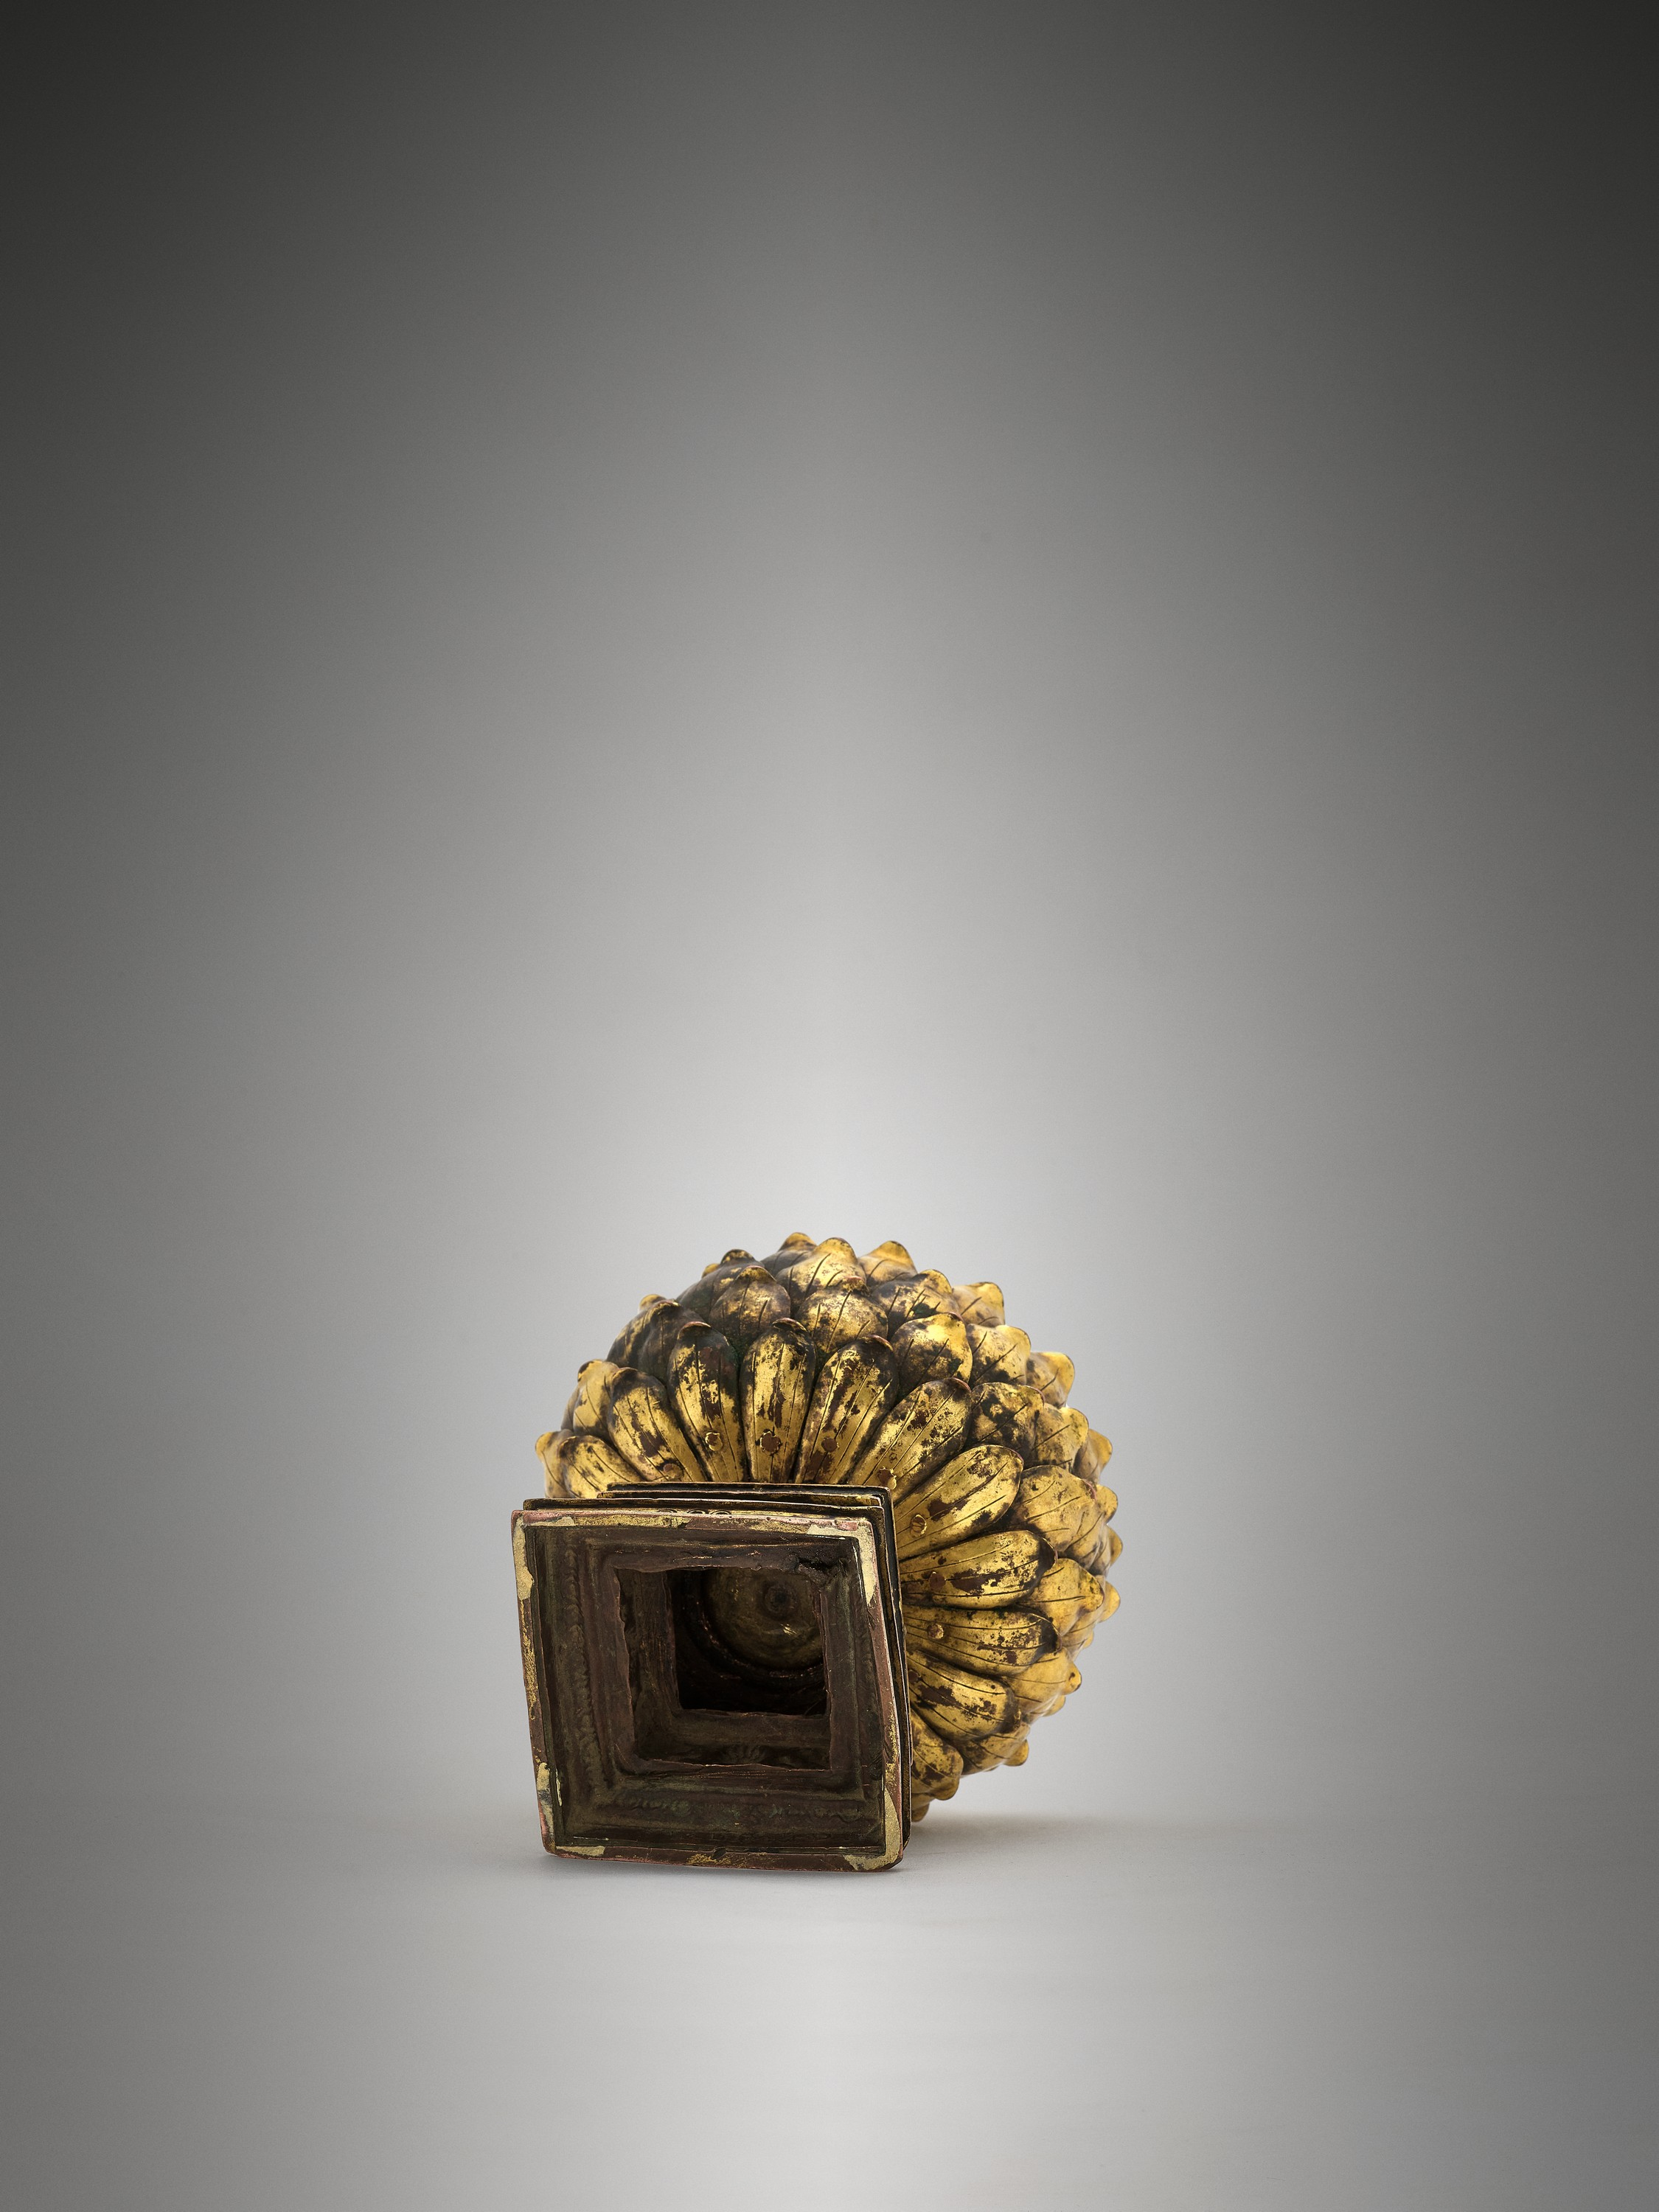 A ROCK CRYSTAL SPHERE WITH A GILT BRONZE LOTUS BASE, QING DYNASTY - Image 8 of 11